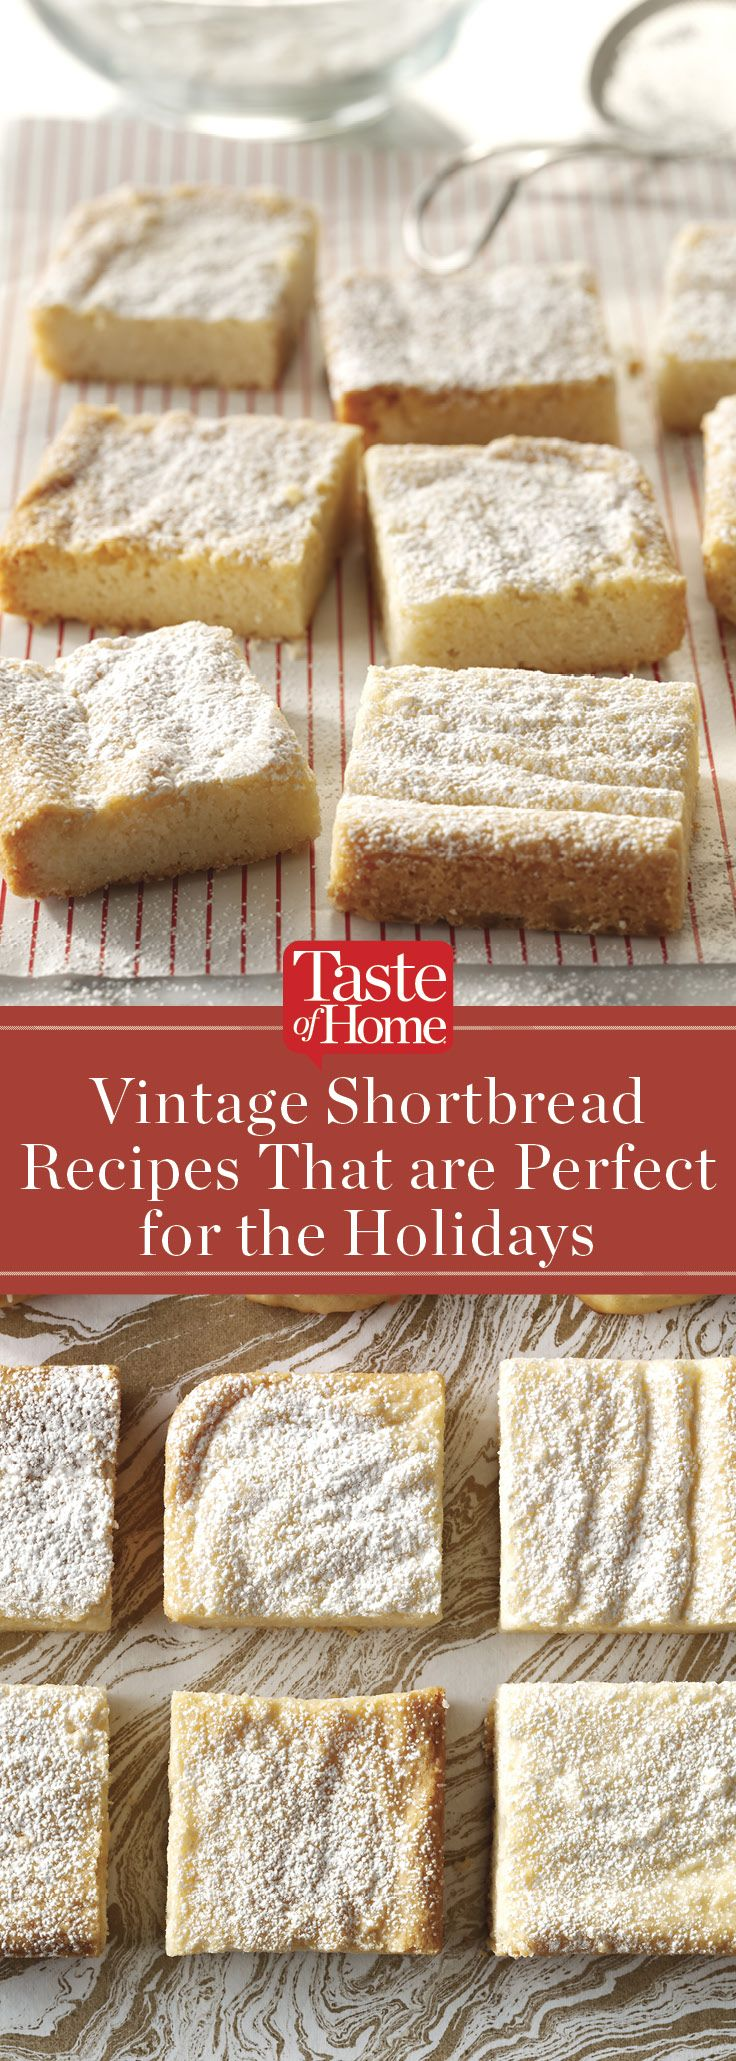 Vintage Shortbread Recipes That are Perfect for the Holidays